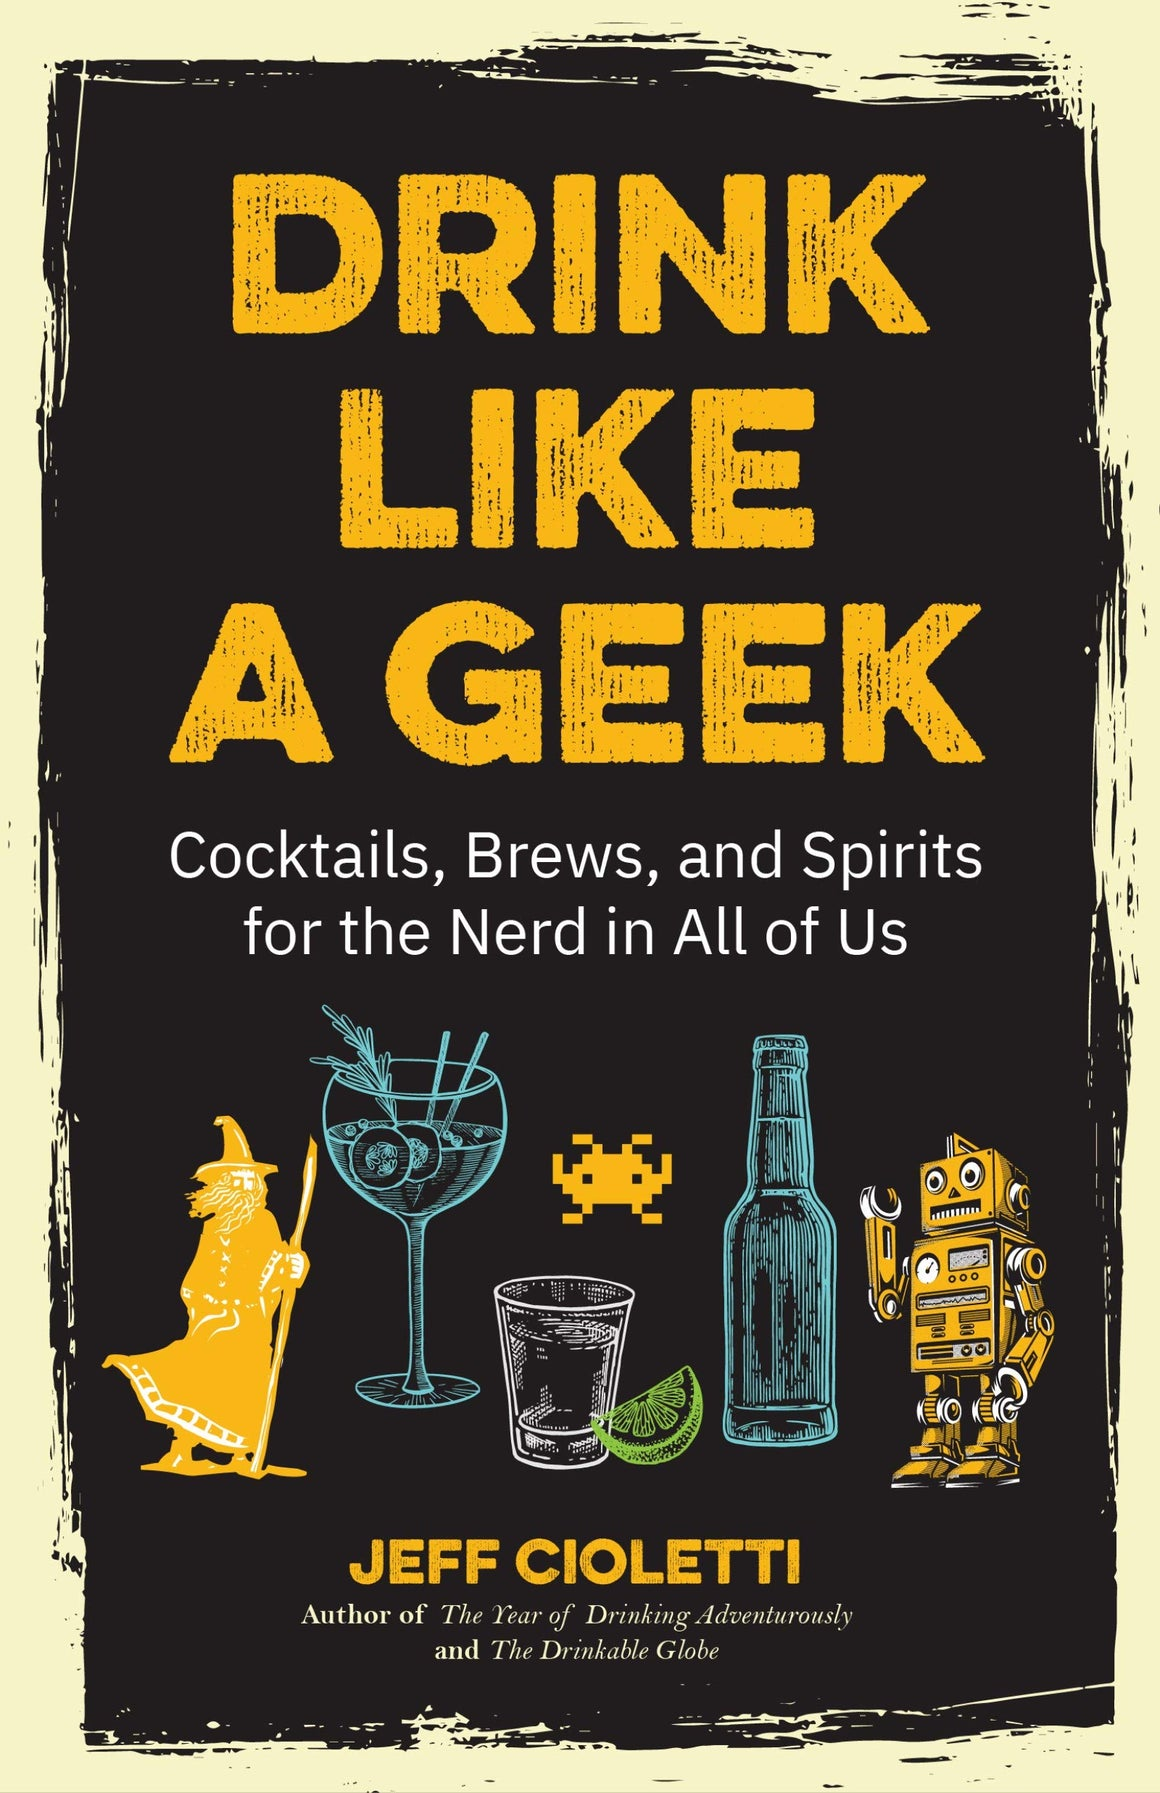 FREE AUTHOR EVENT! Sun. Feb. 2 •  Jeff Cioletti • Drink Like a Geek: Cocktails, Brews, and Spirits for the Nerd in All of Us • 3:00 P.M.